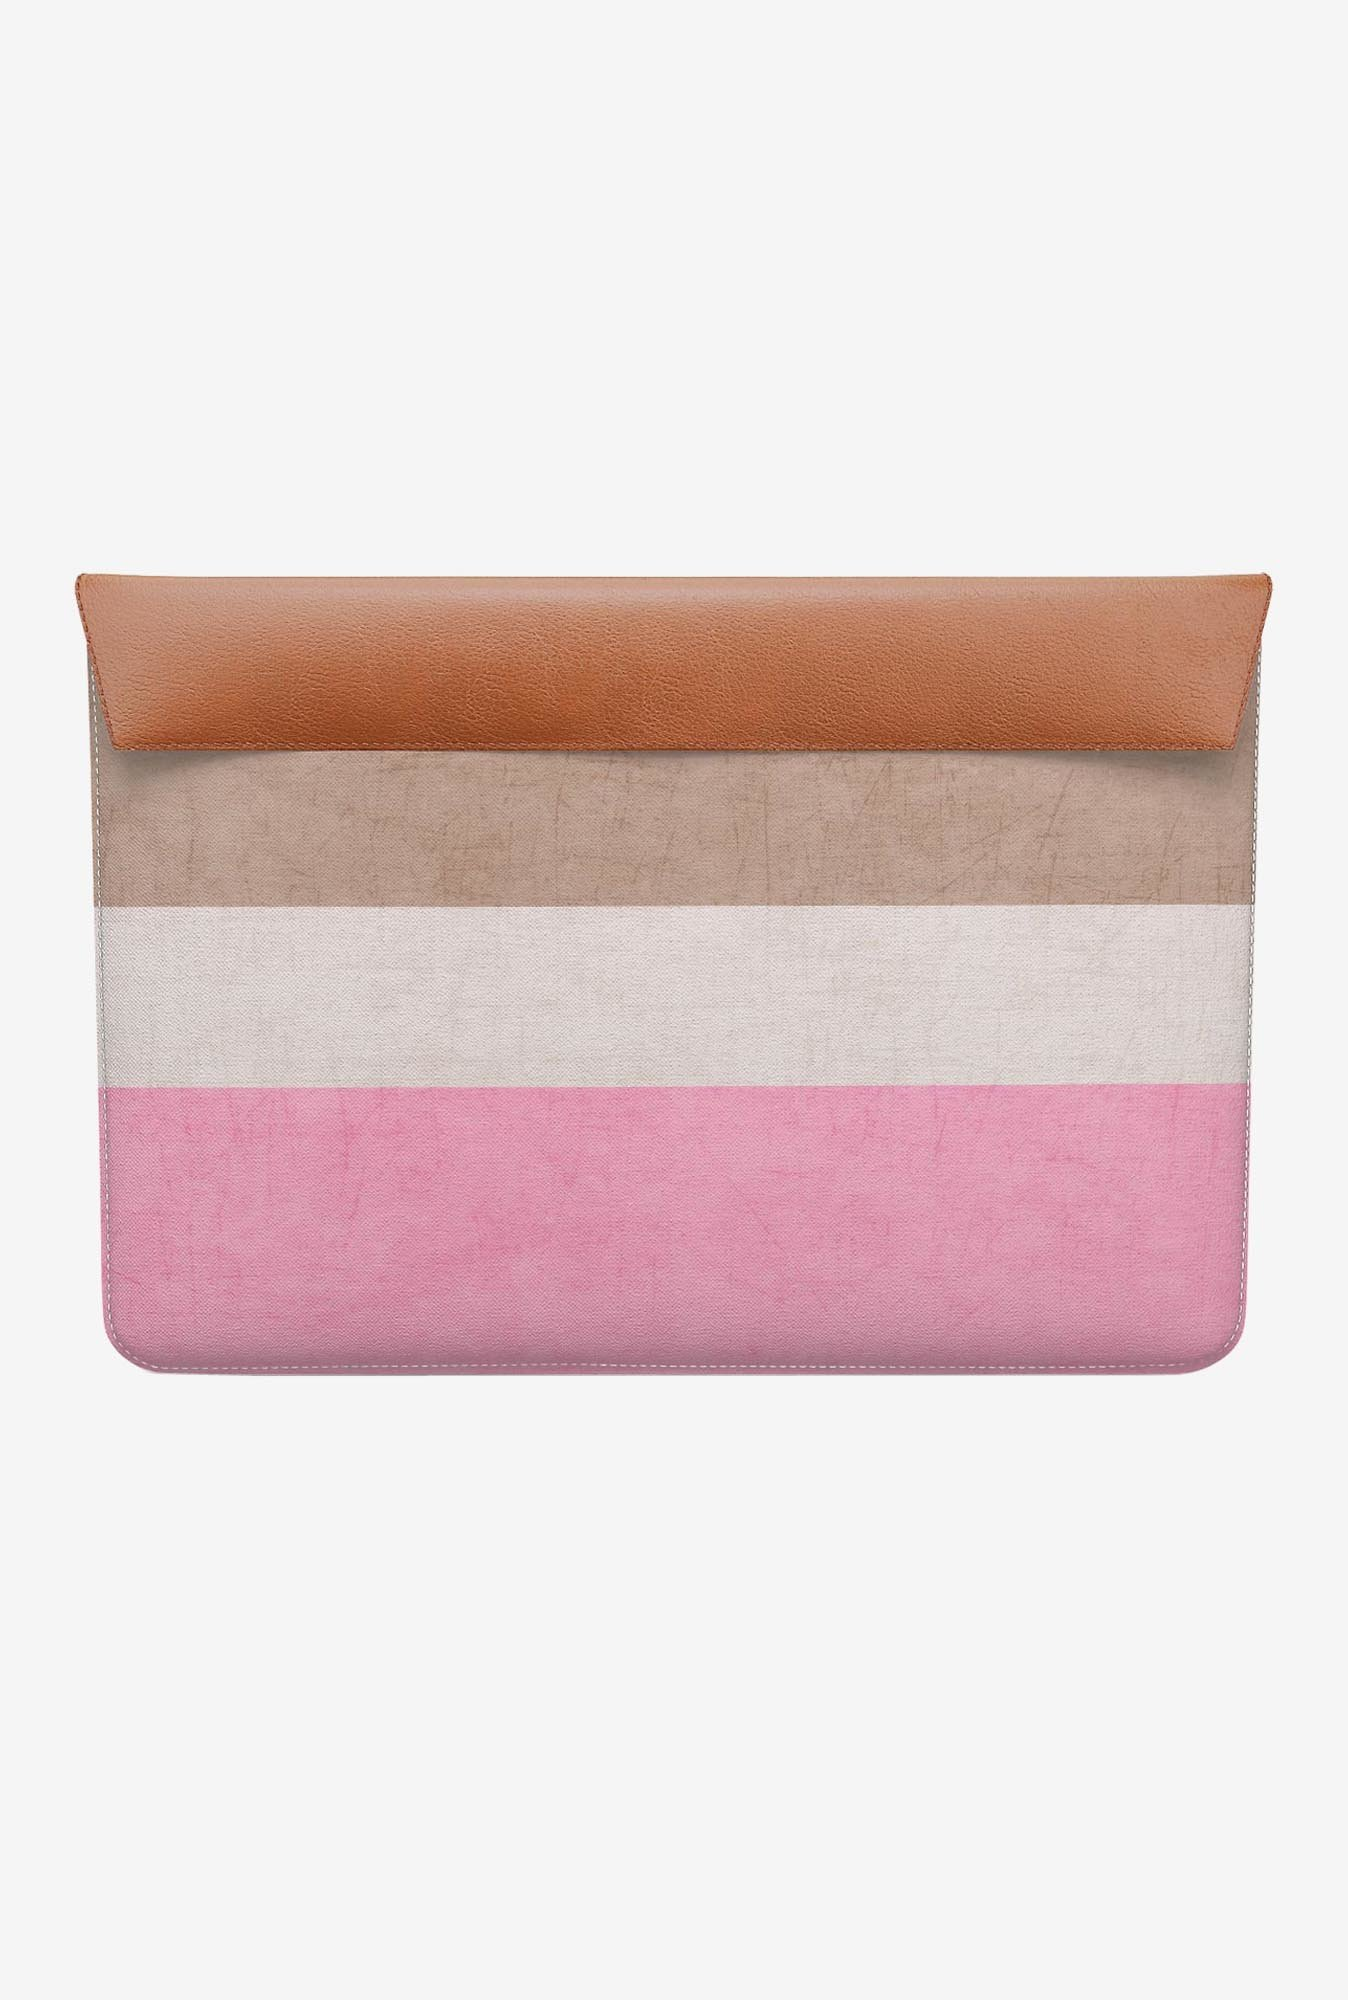 DailyObjects Neapolitan MacBook Air 11 Envelope Sleeve